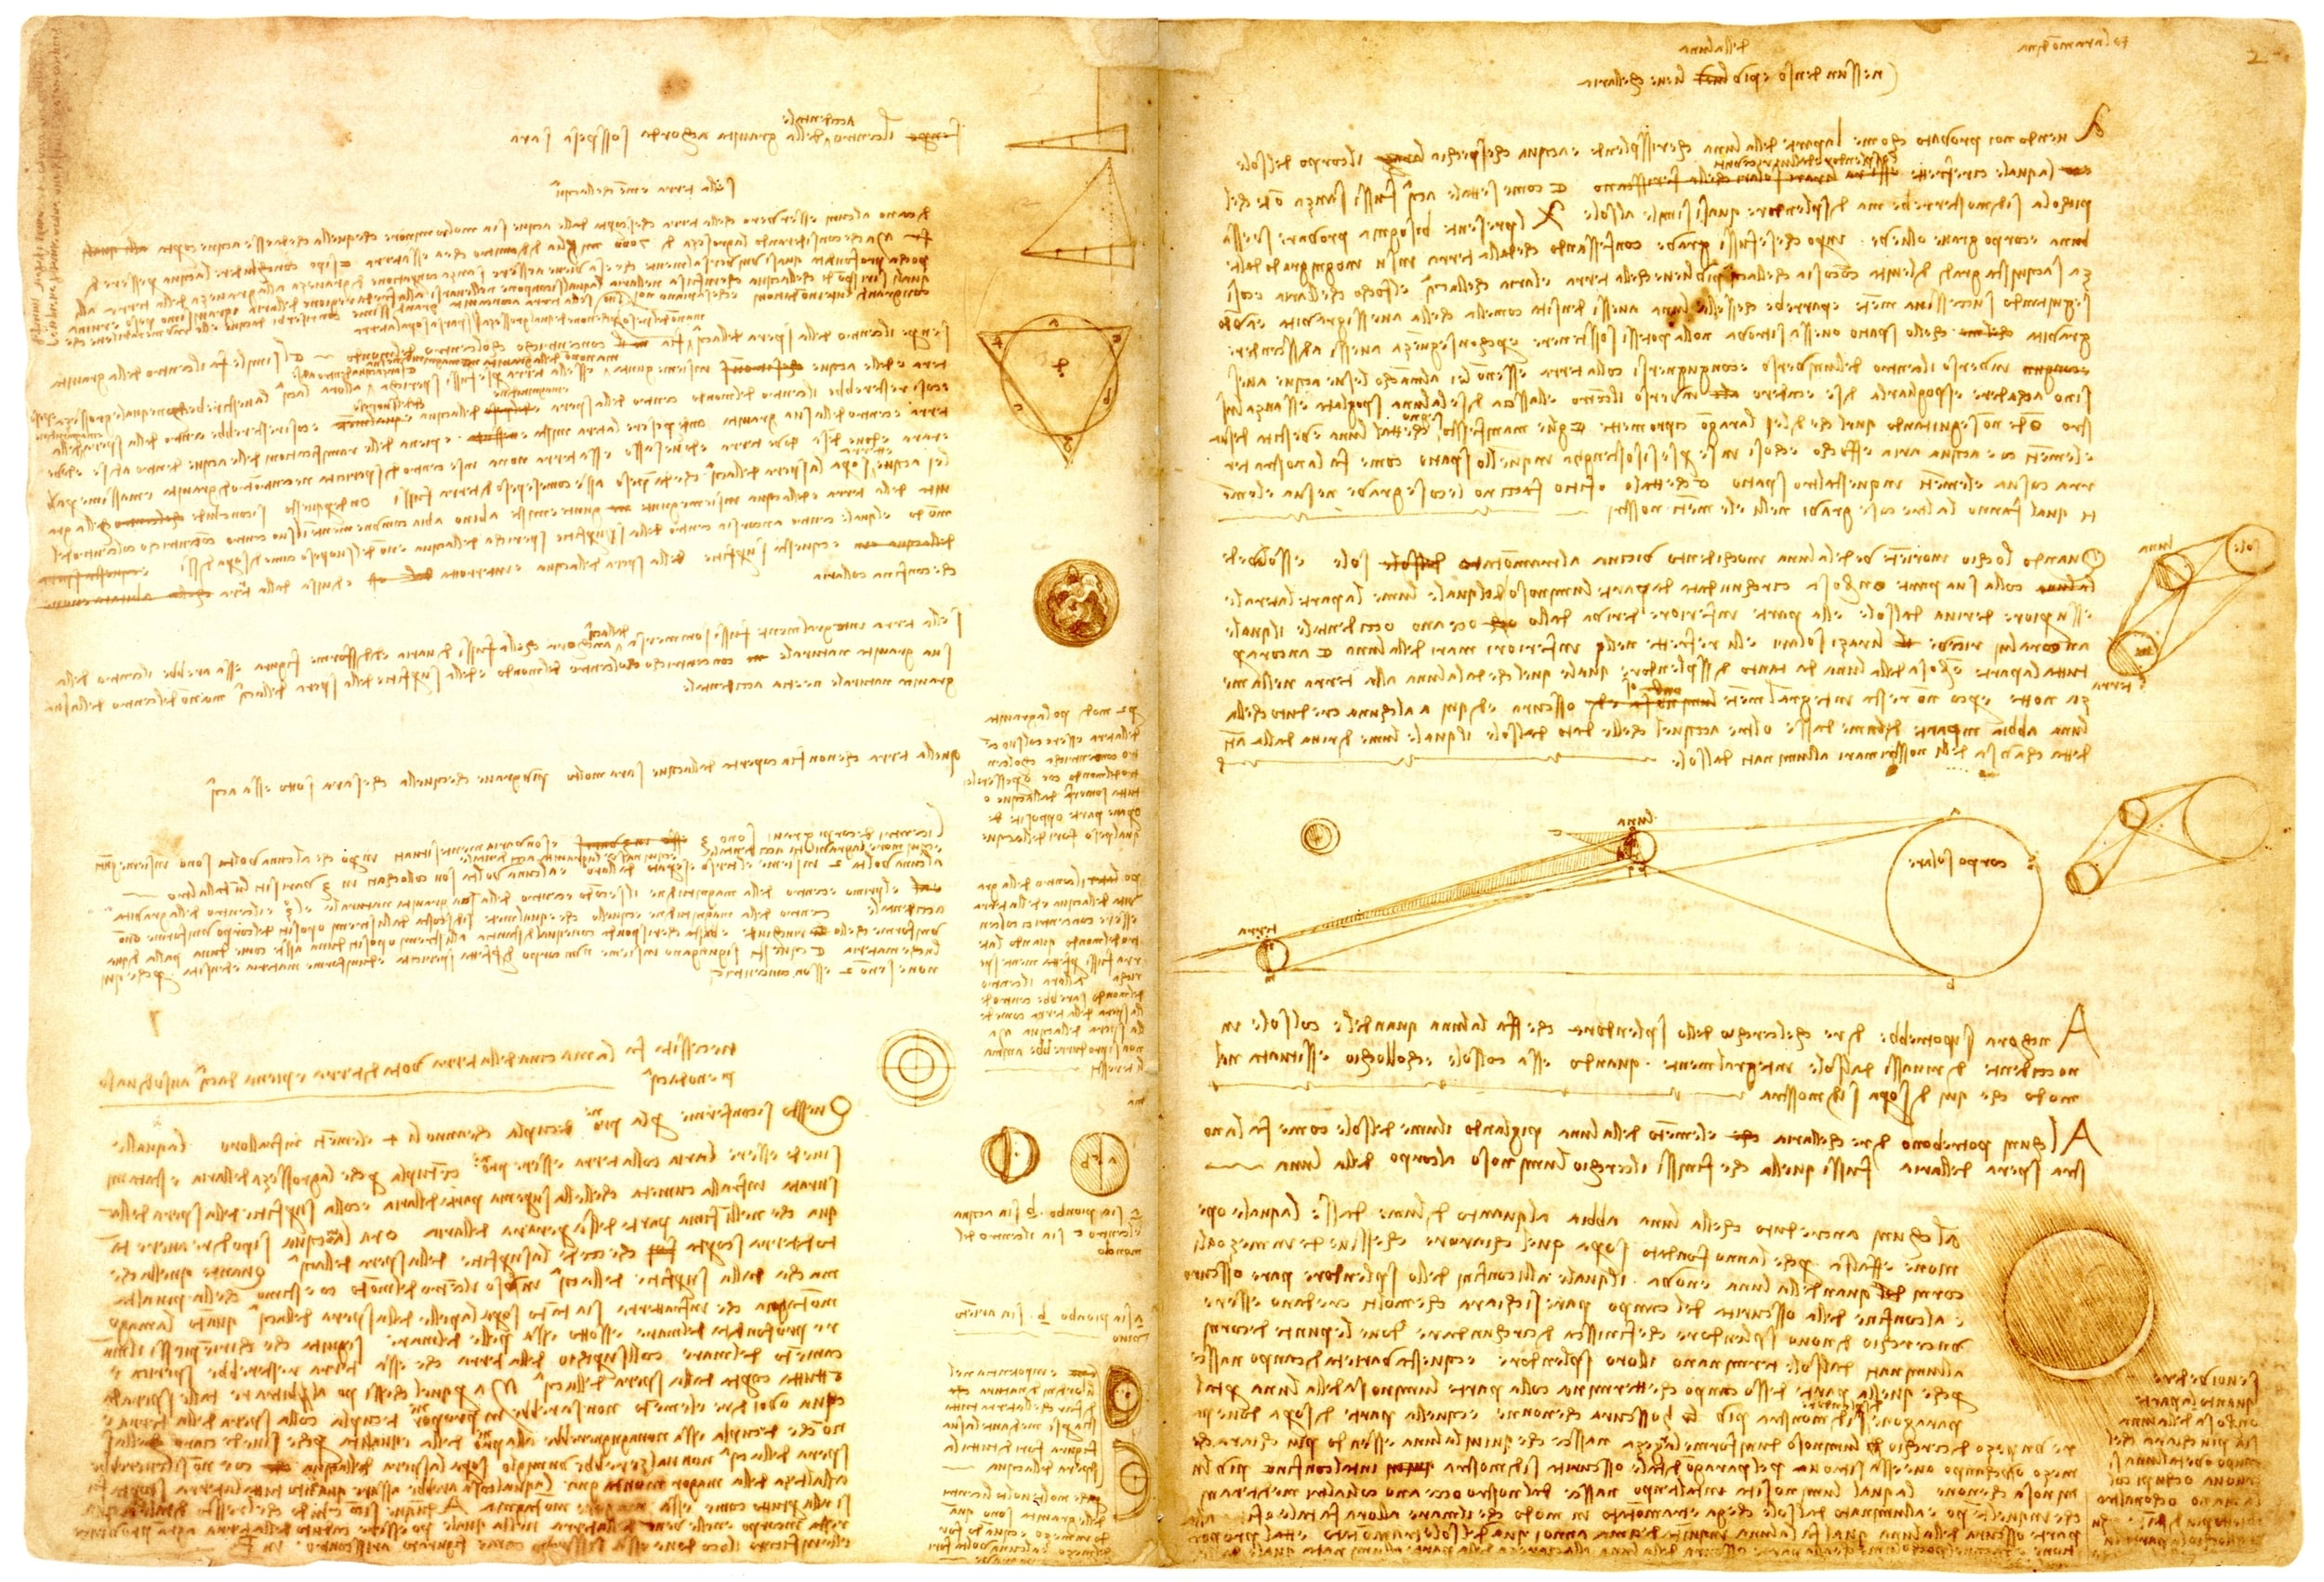 Codex Leicester , Hammer 2A - Fol.35v (left) and Fol.2r (right). Photo  credit .